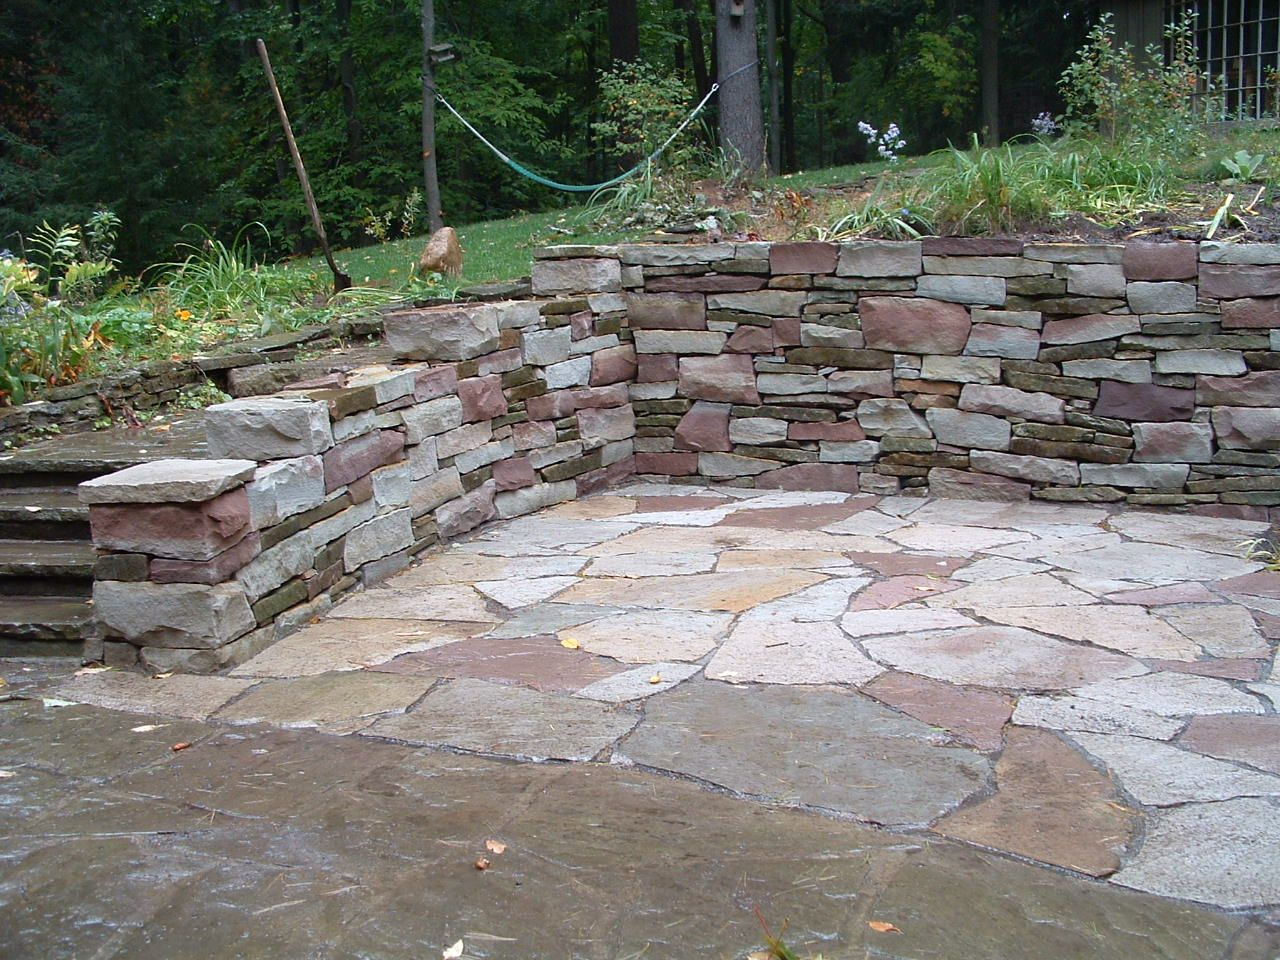 Retaining Wall Design Ideas retaining wall design ideas by caroline dawes gardens Patio Designs Among Retaining Walls Matched With Stone Flooring